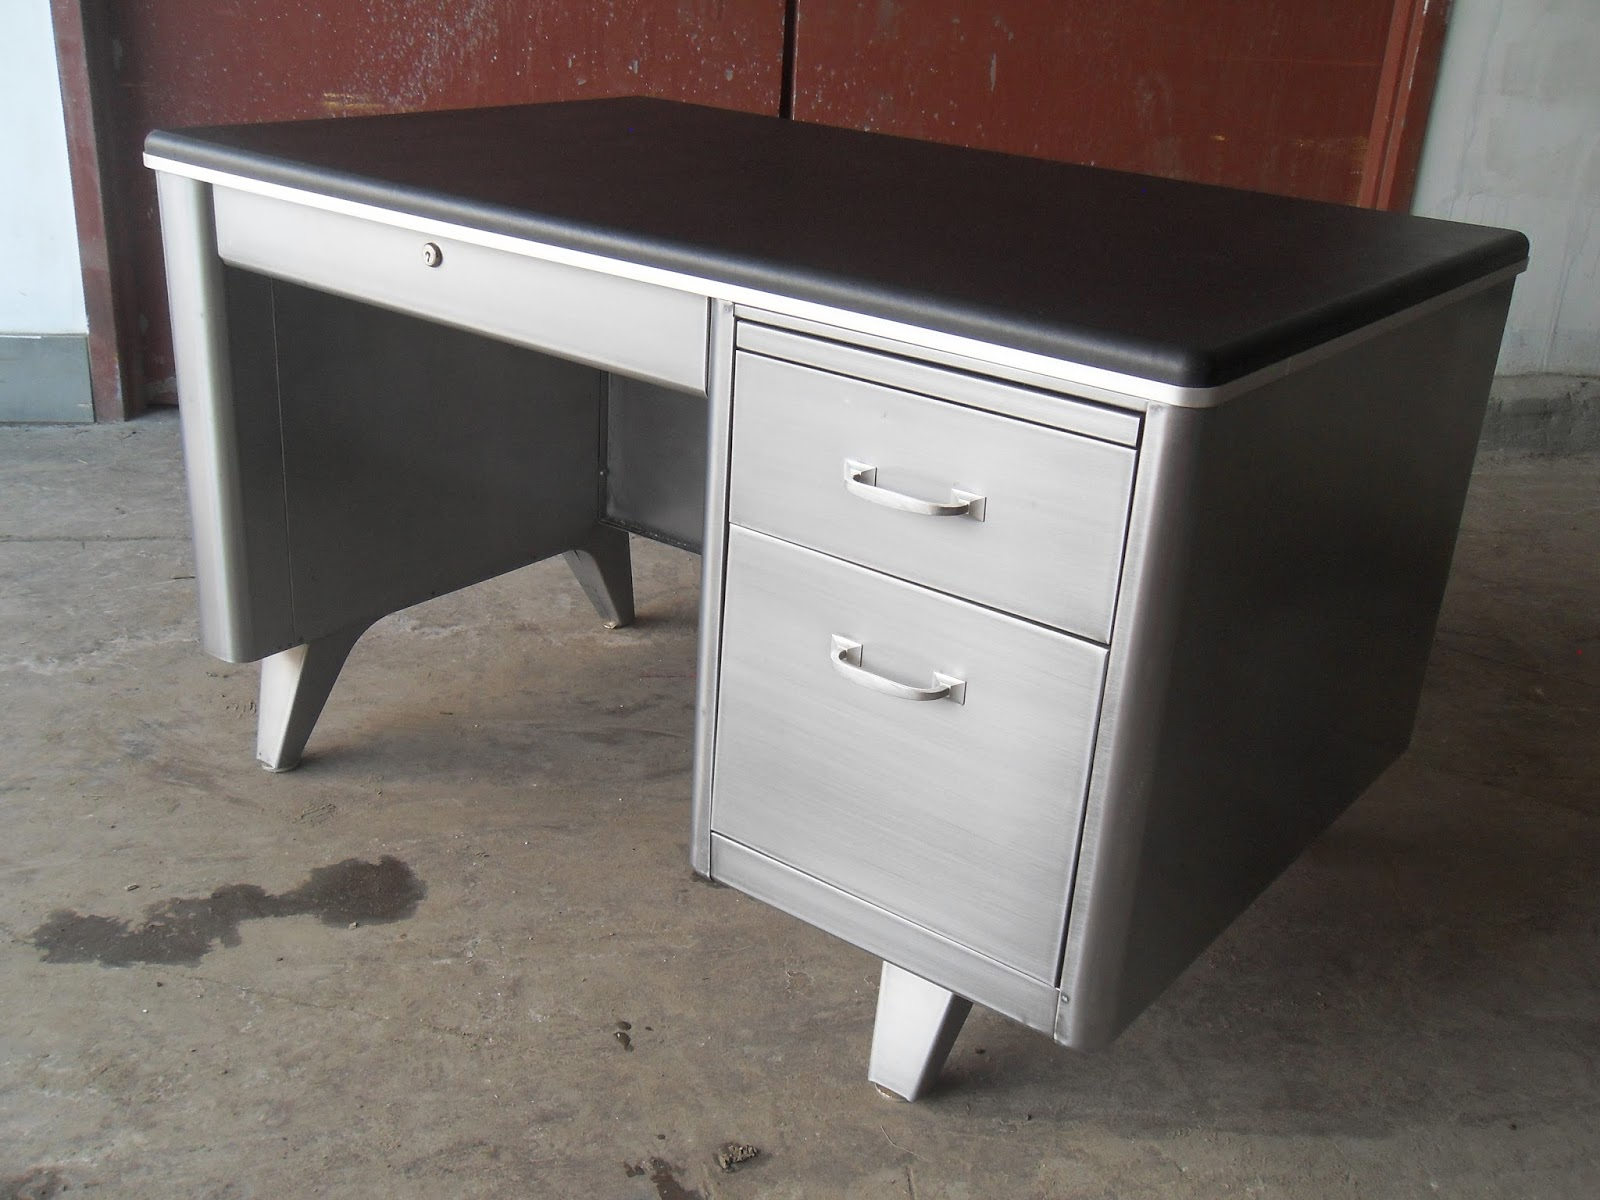 z refurbished pieces tanker furniture f id steelcase desks storage circa case desk at